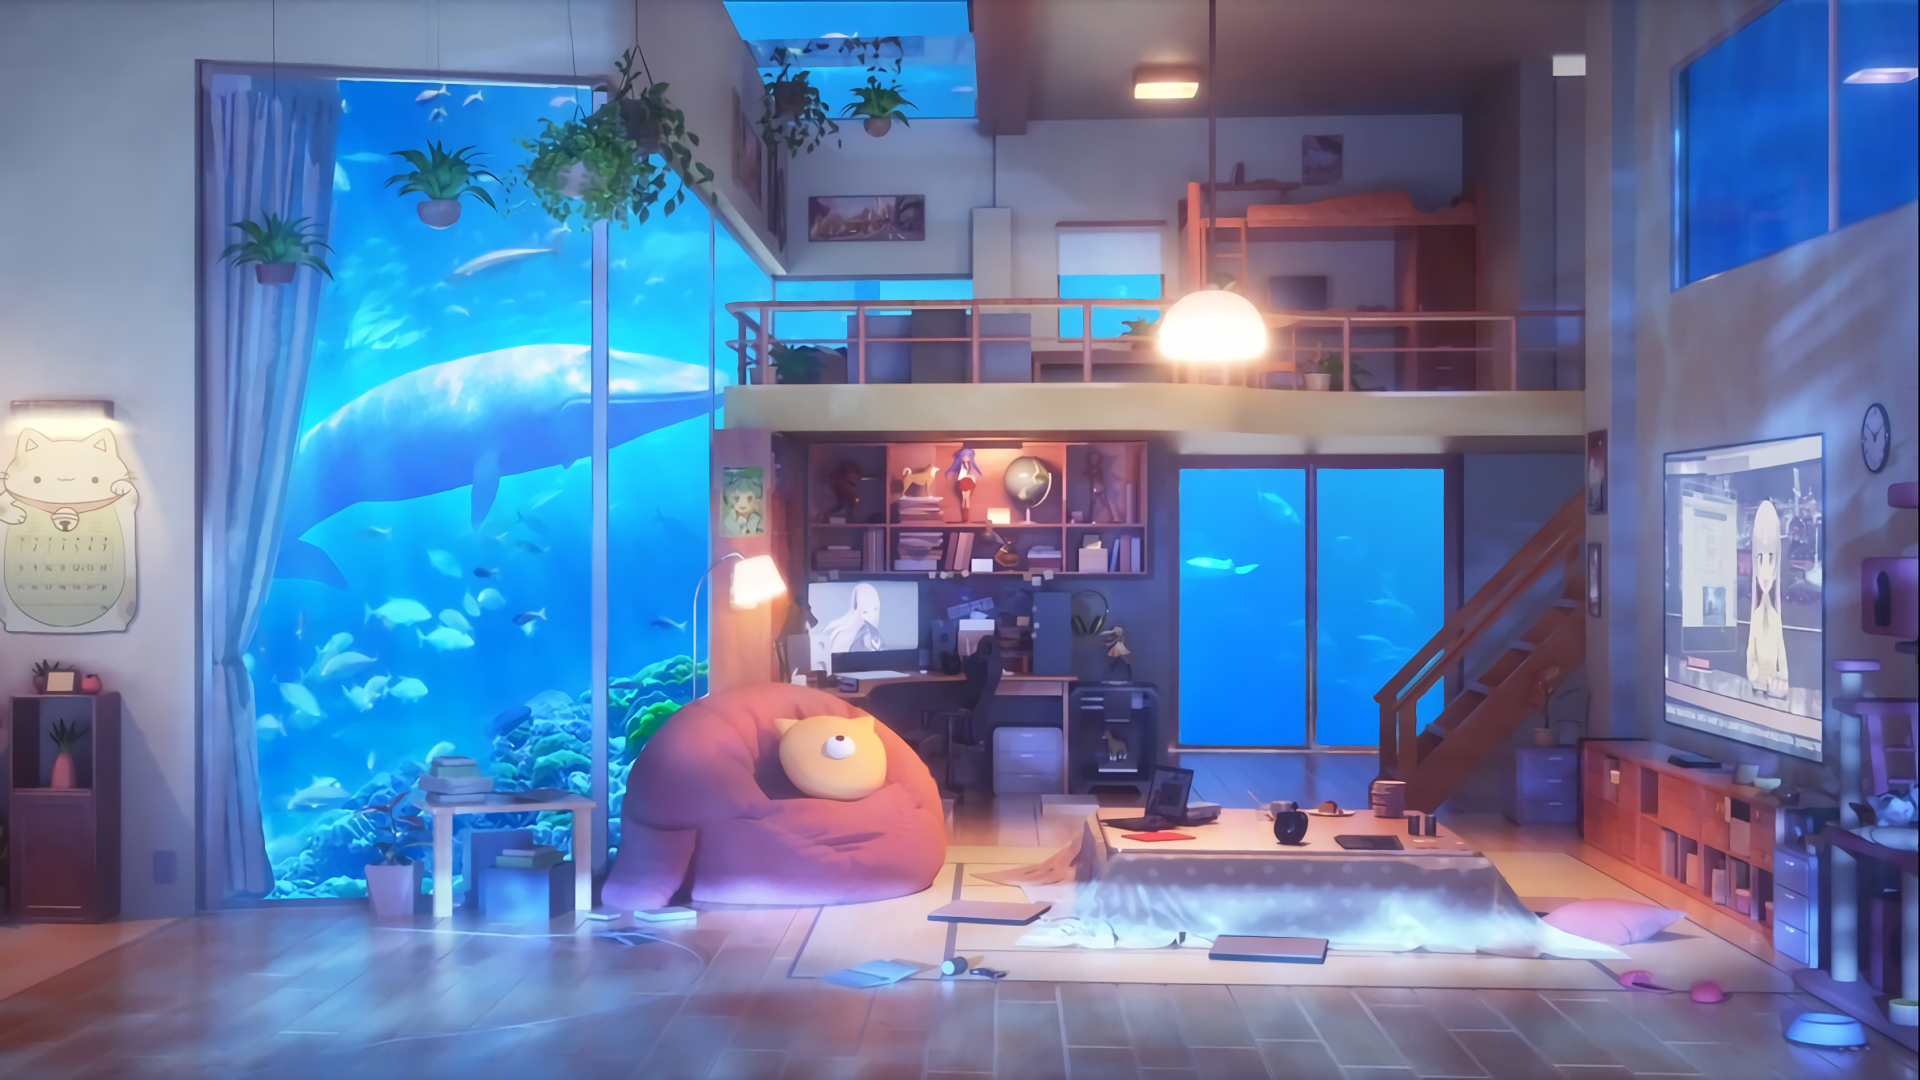 Anime Room Wallpapers Top Free Anime Room Backgrounds Wallpaperaccess